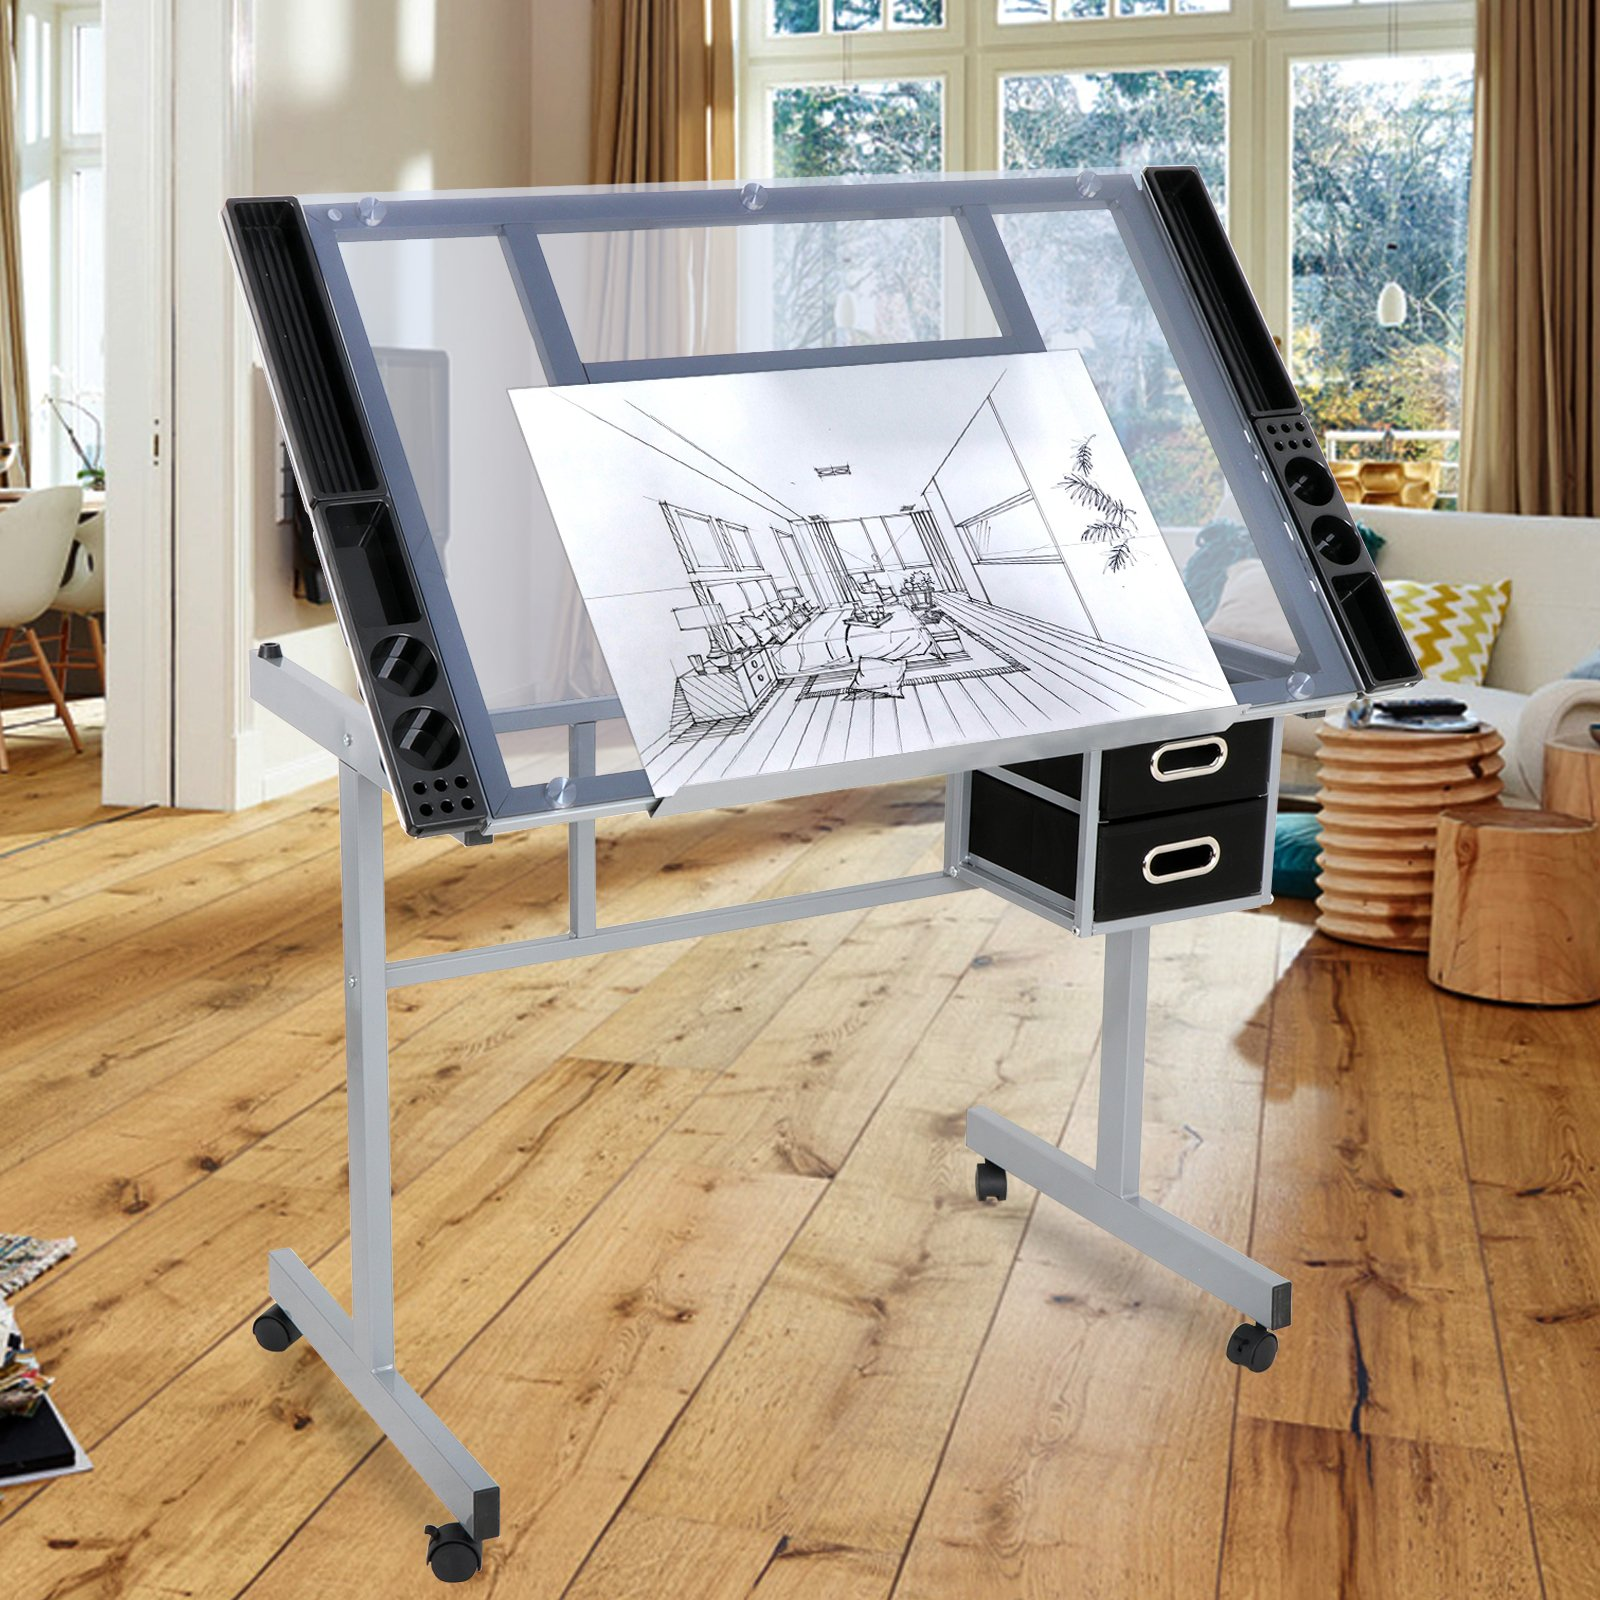 ZENY Adjustable Drawing Table Top Rolling Drafting Desk Tempered Glass Top W/2 Slide Drawers & Rolling Wheels by ZENY